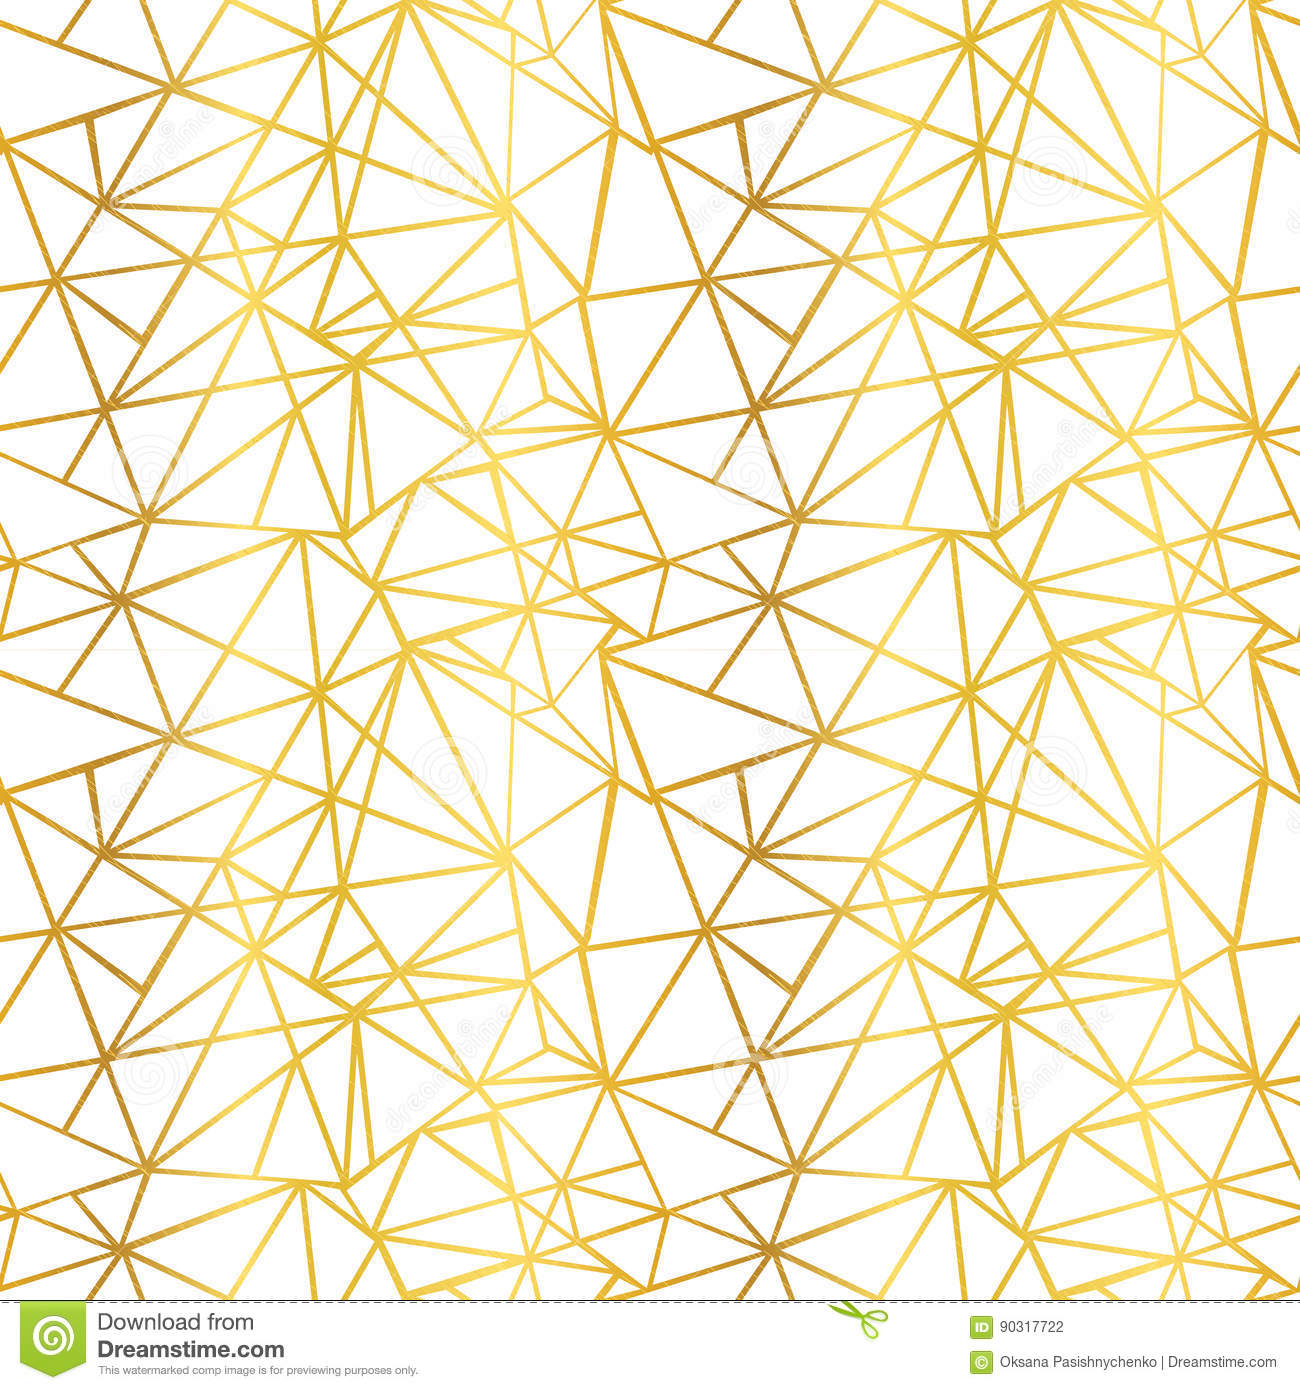 vector white and gold foil wire geometric mosaic triangles